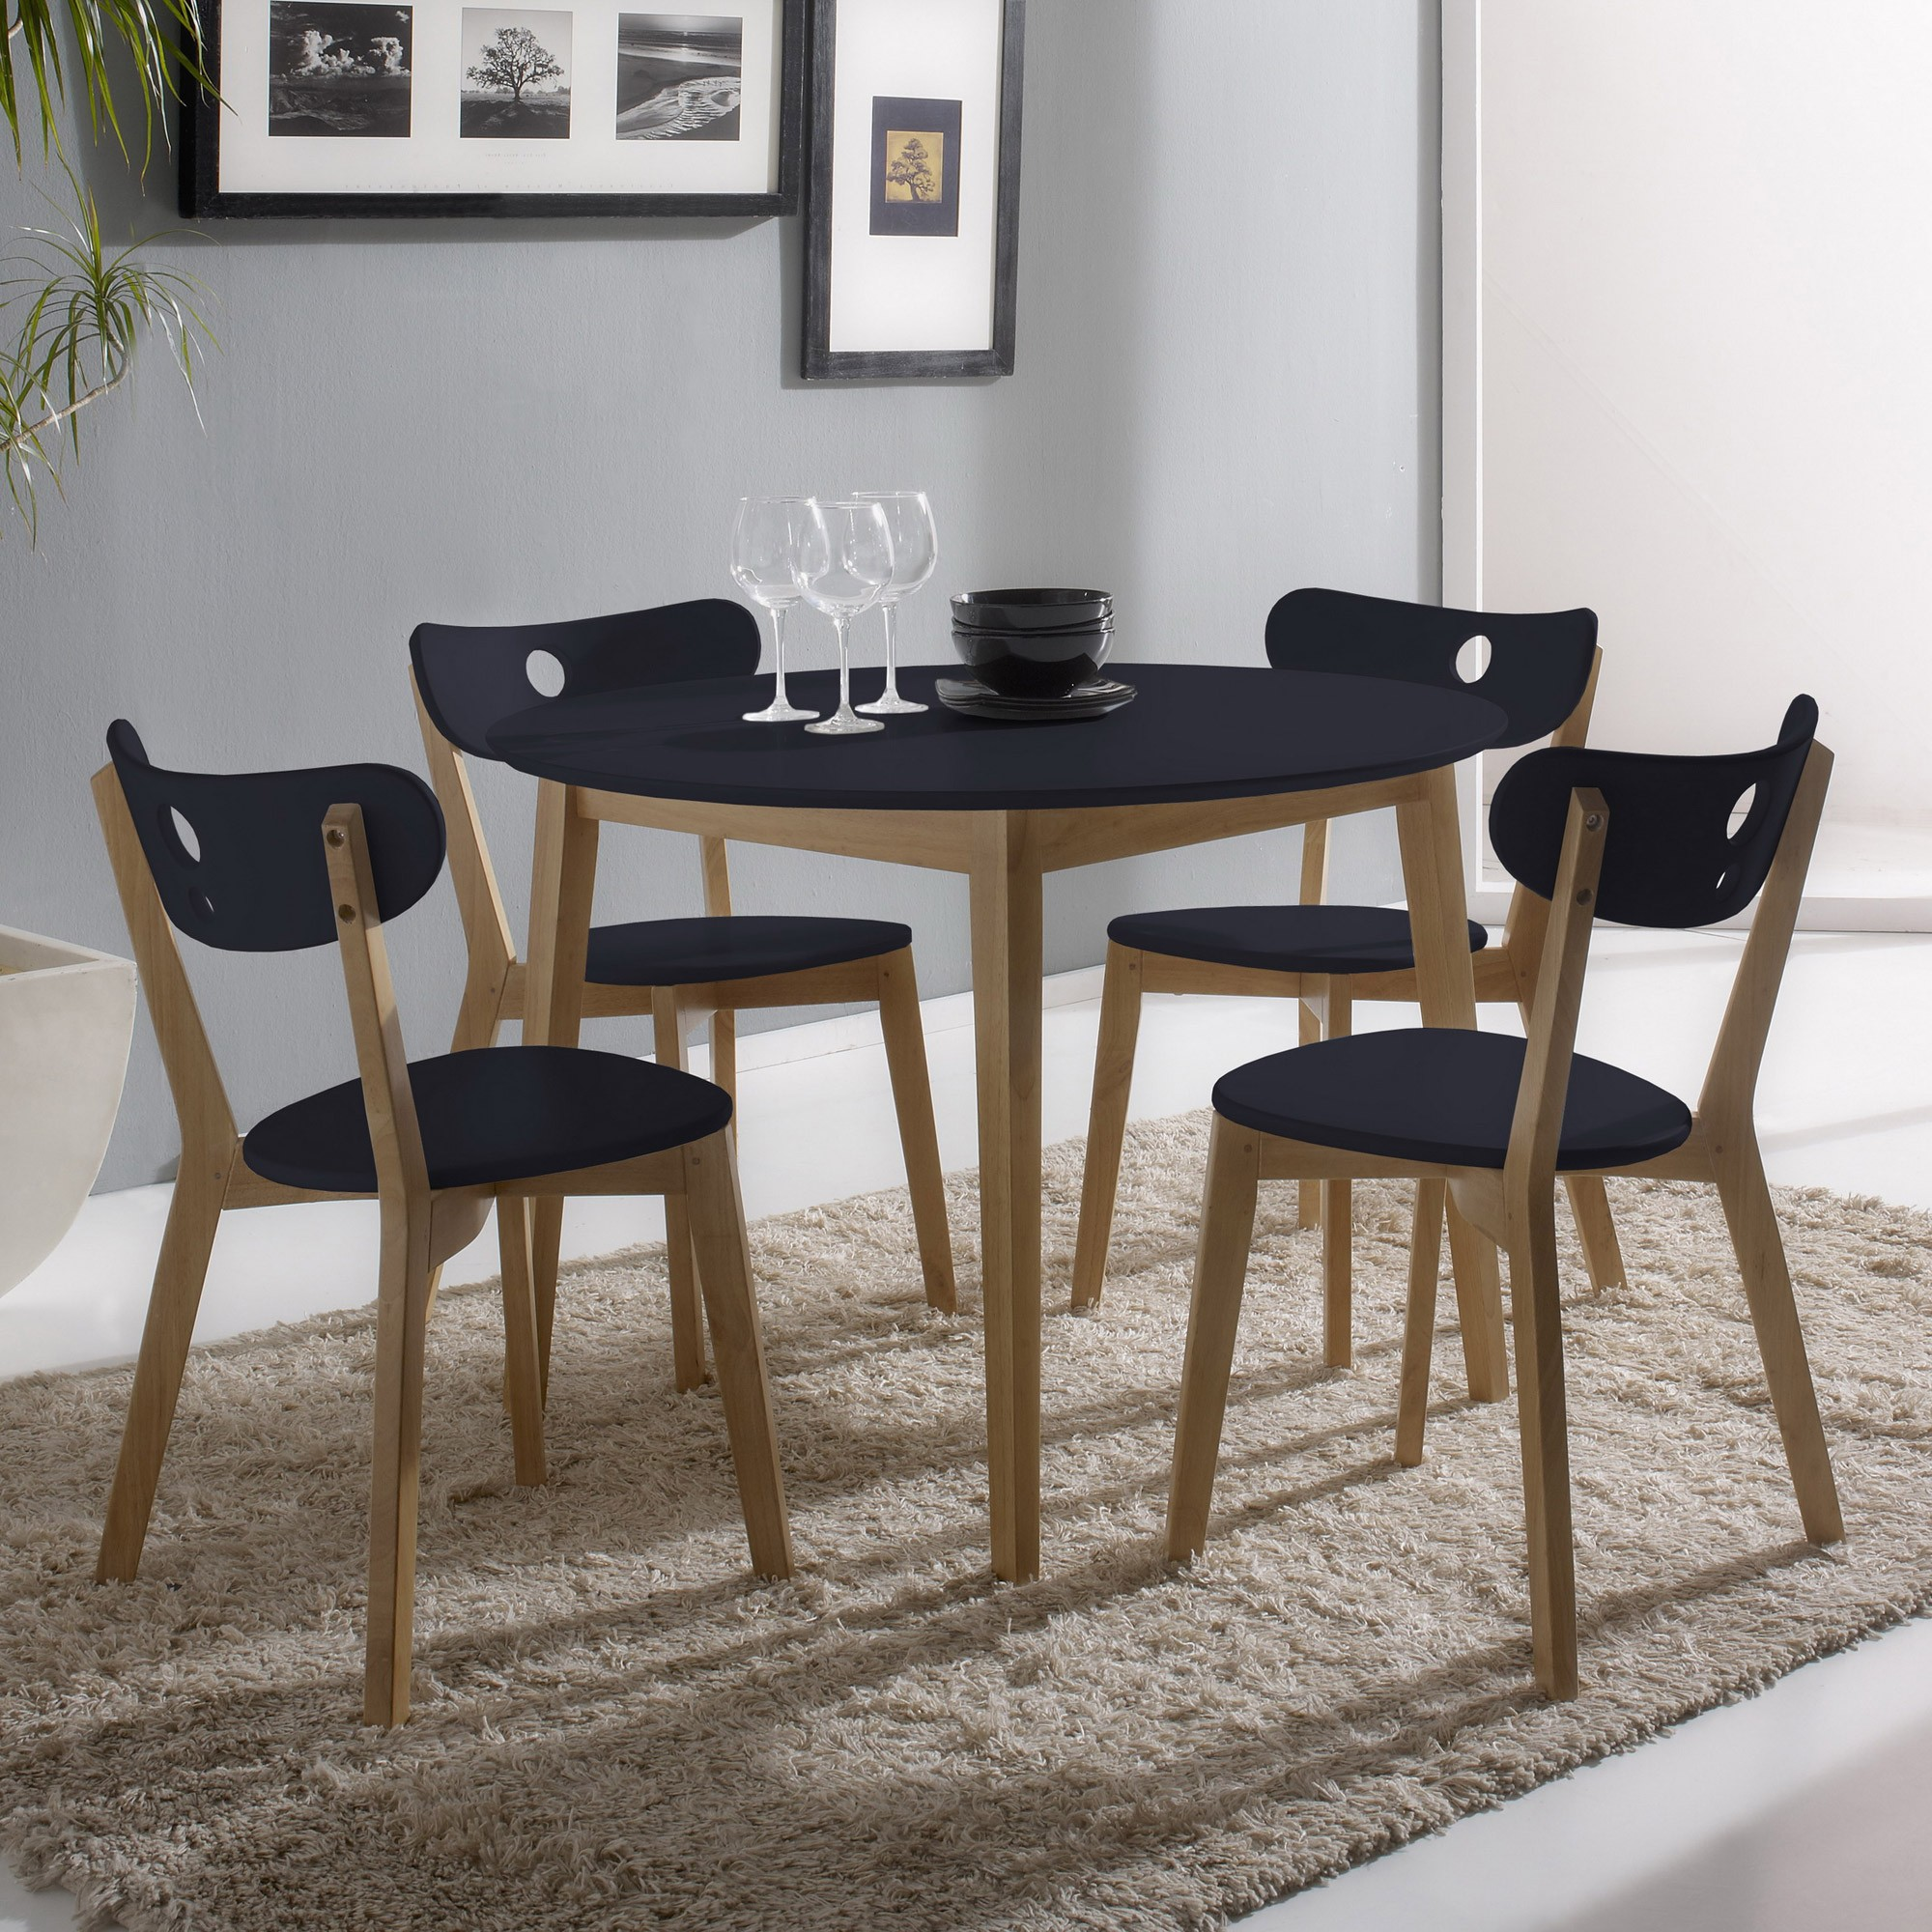 table de cuisine ronde en chene cuisine id es de. Black Bedroom Furniture Sets. Home Design Ideas